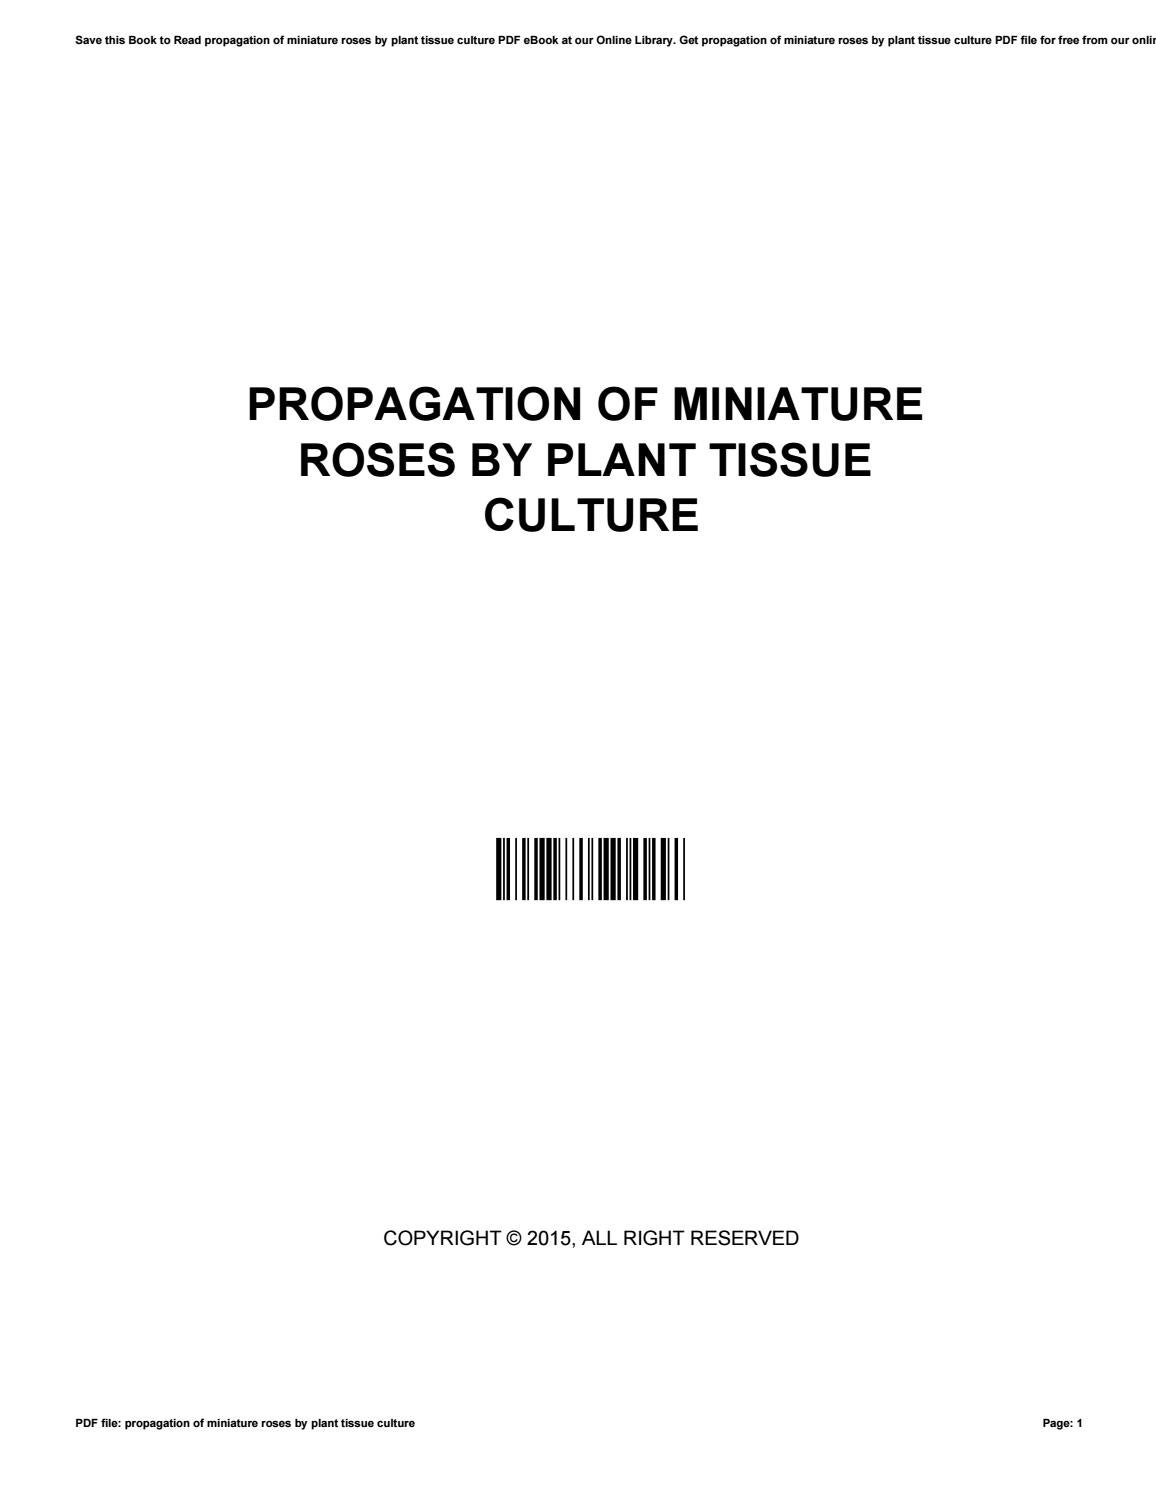 Propagation of miniature roses by plant tissue culture by